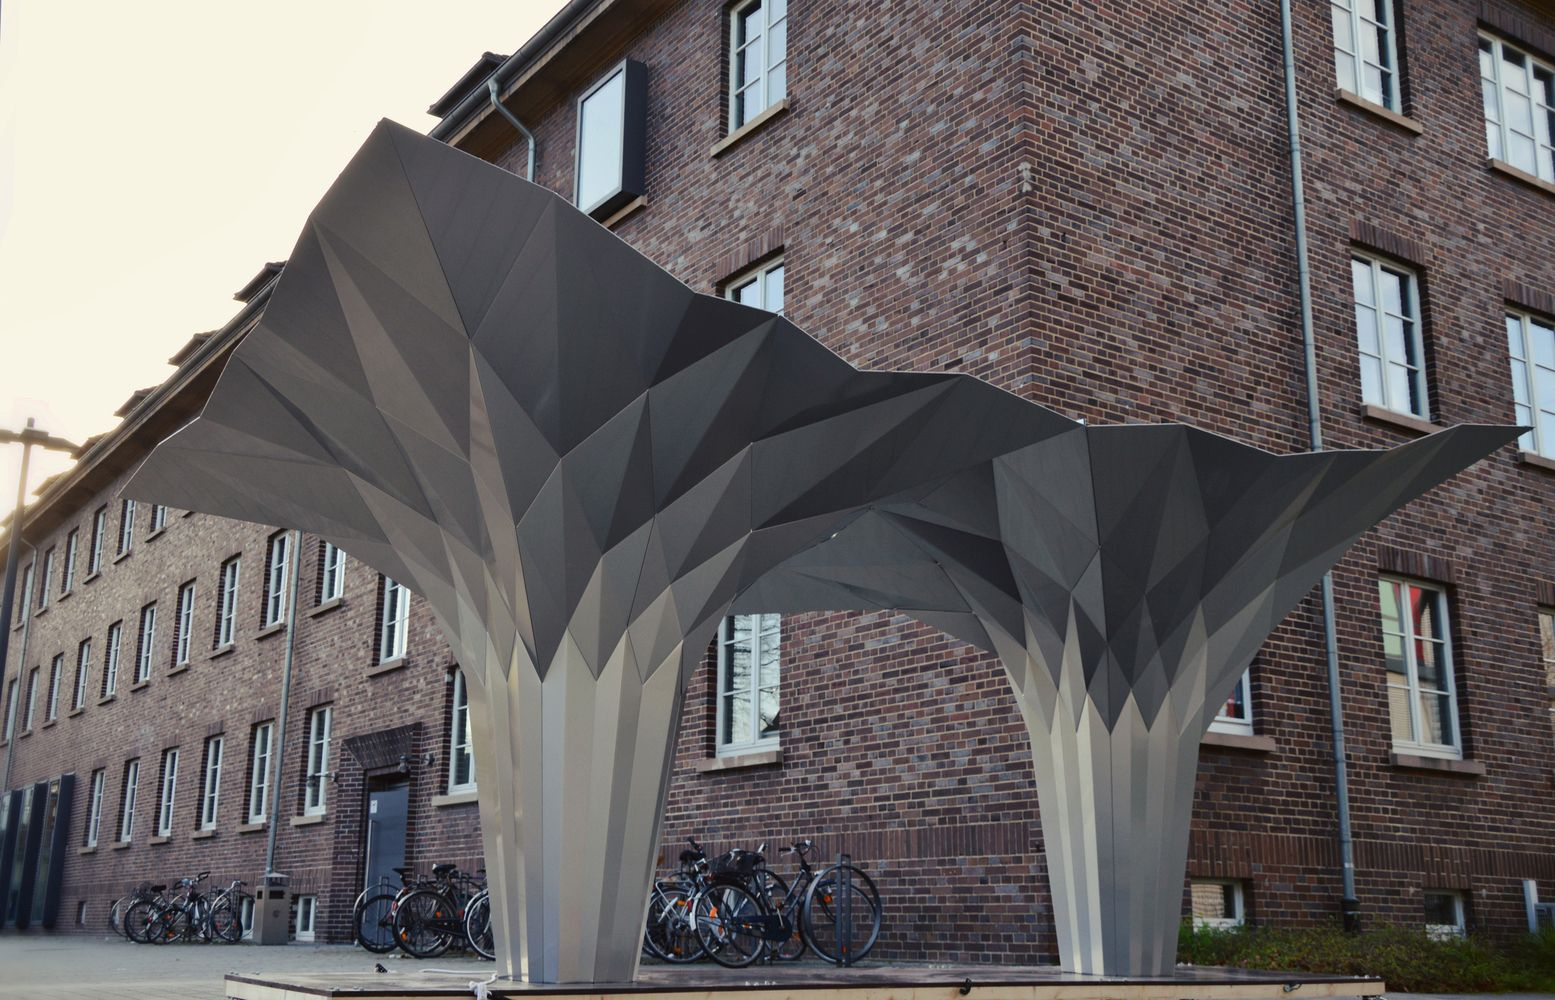 Origami Architecture Design Gallery Of Origami Pavilion Creates Shelter With 8 Folded Aluminum